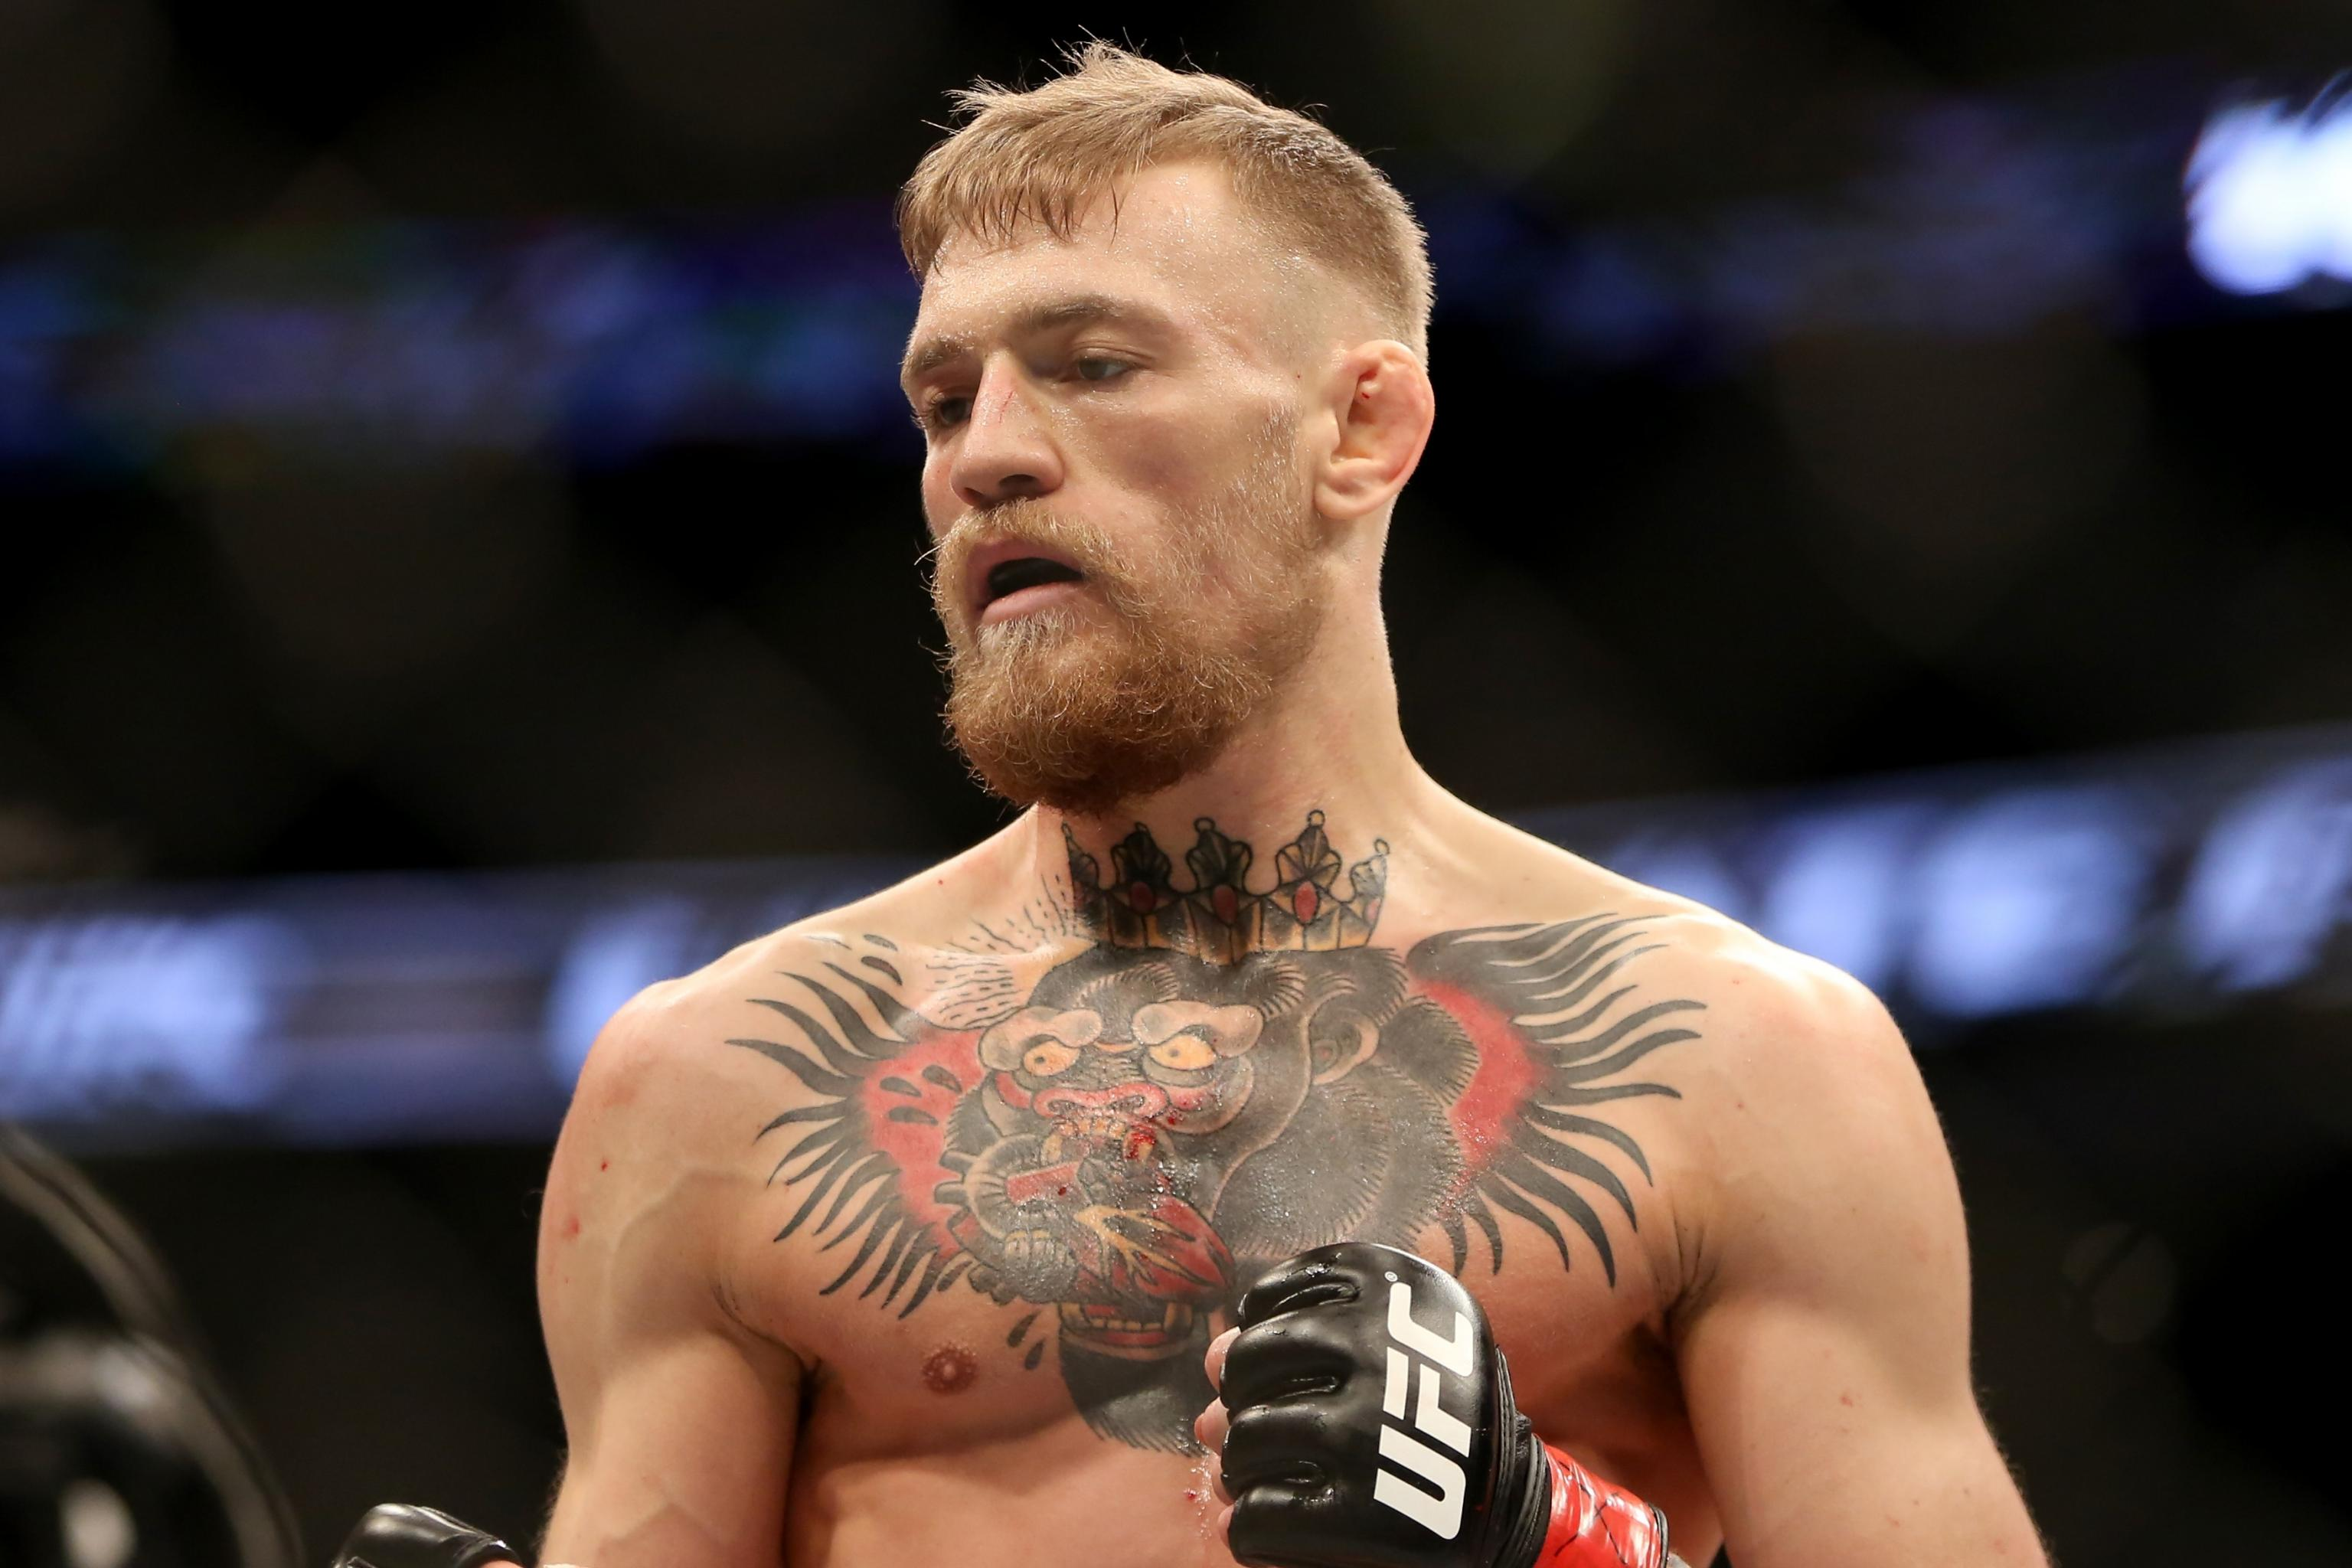 Ufc 189 betting odds tuf 18 finale betting odds